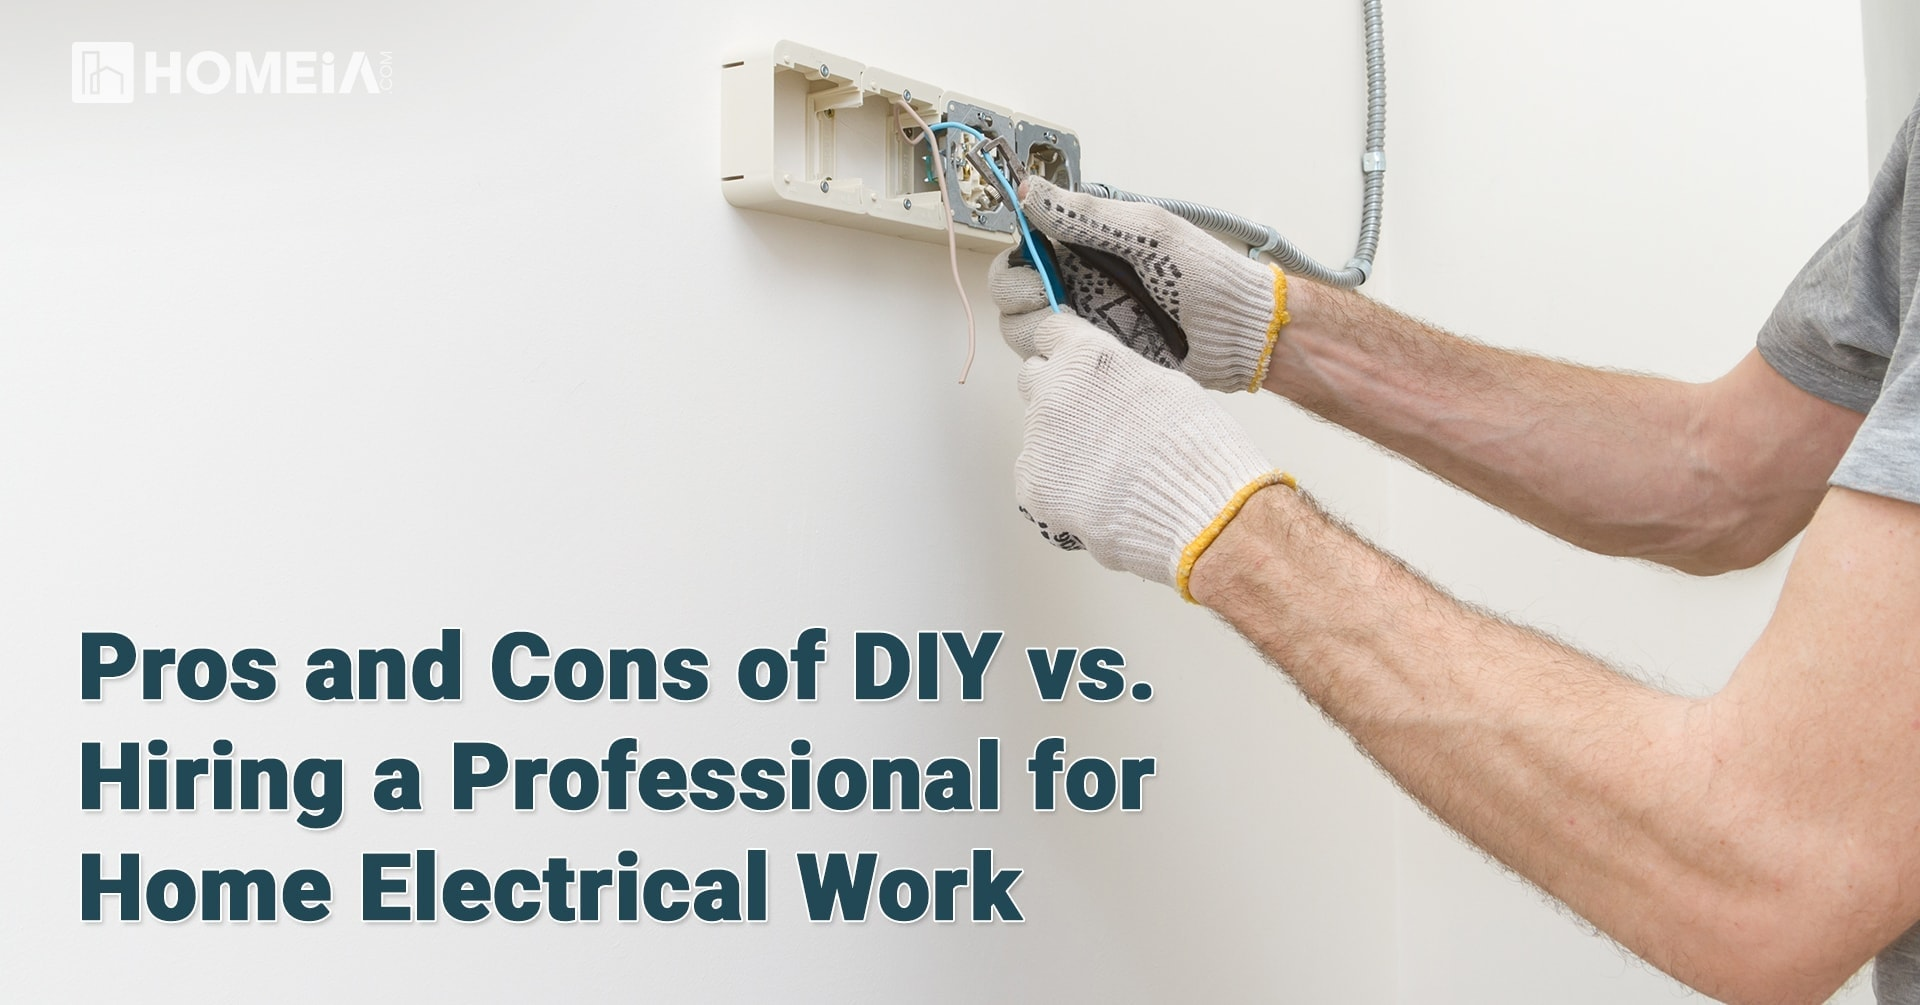 Pros and Cons of DIY vs. Hiring a Professional for Home Electrical Work